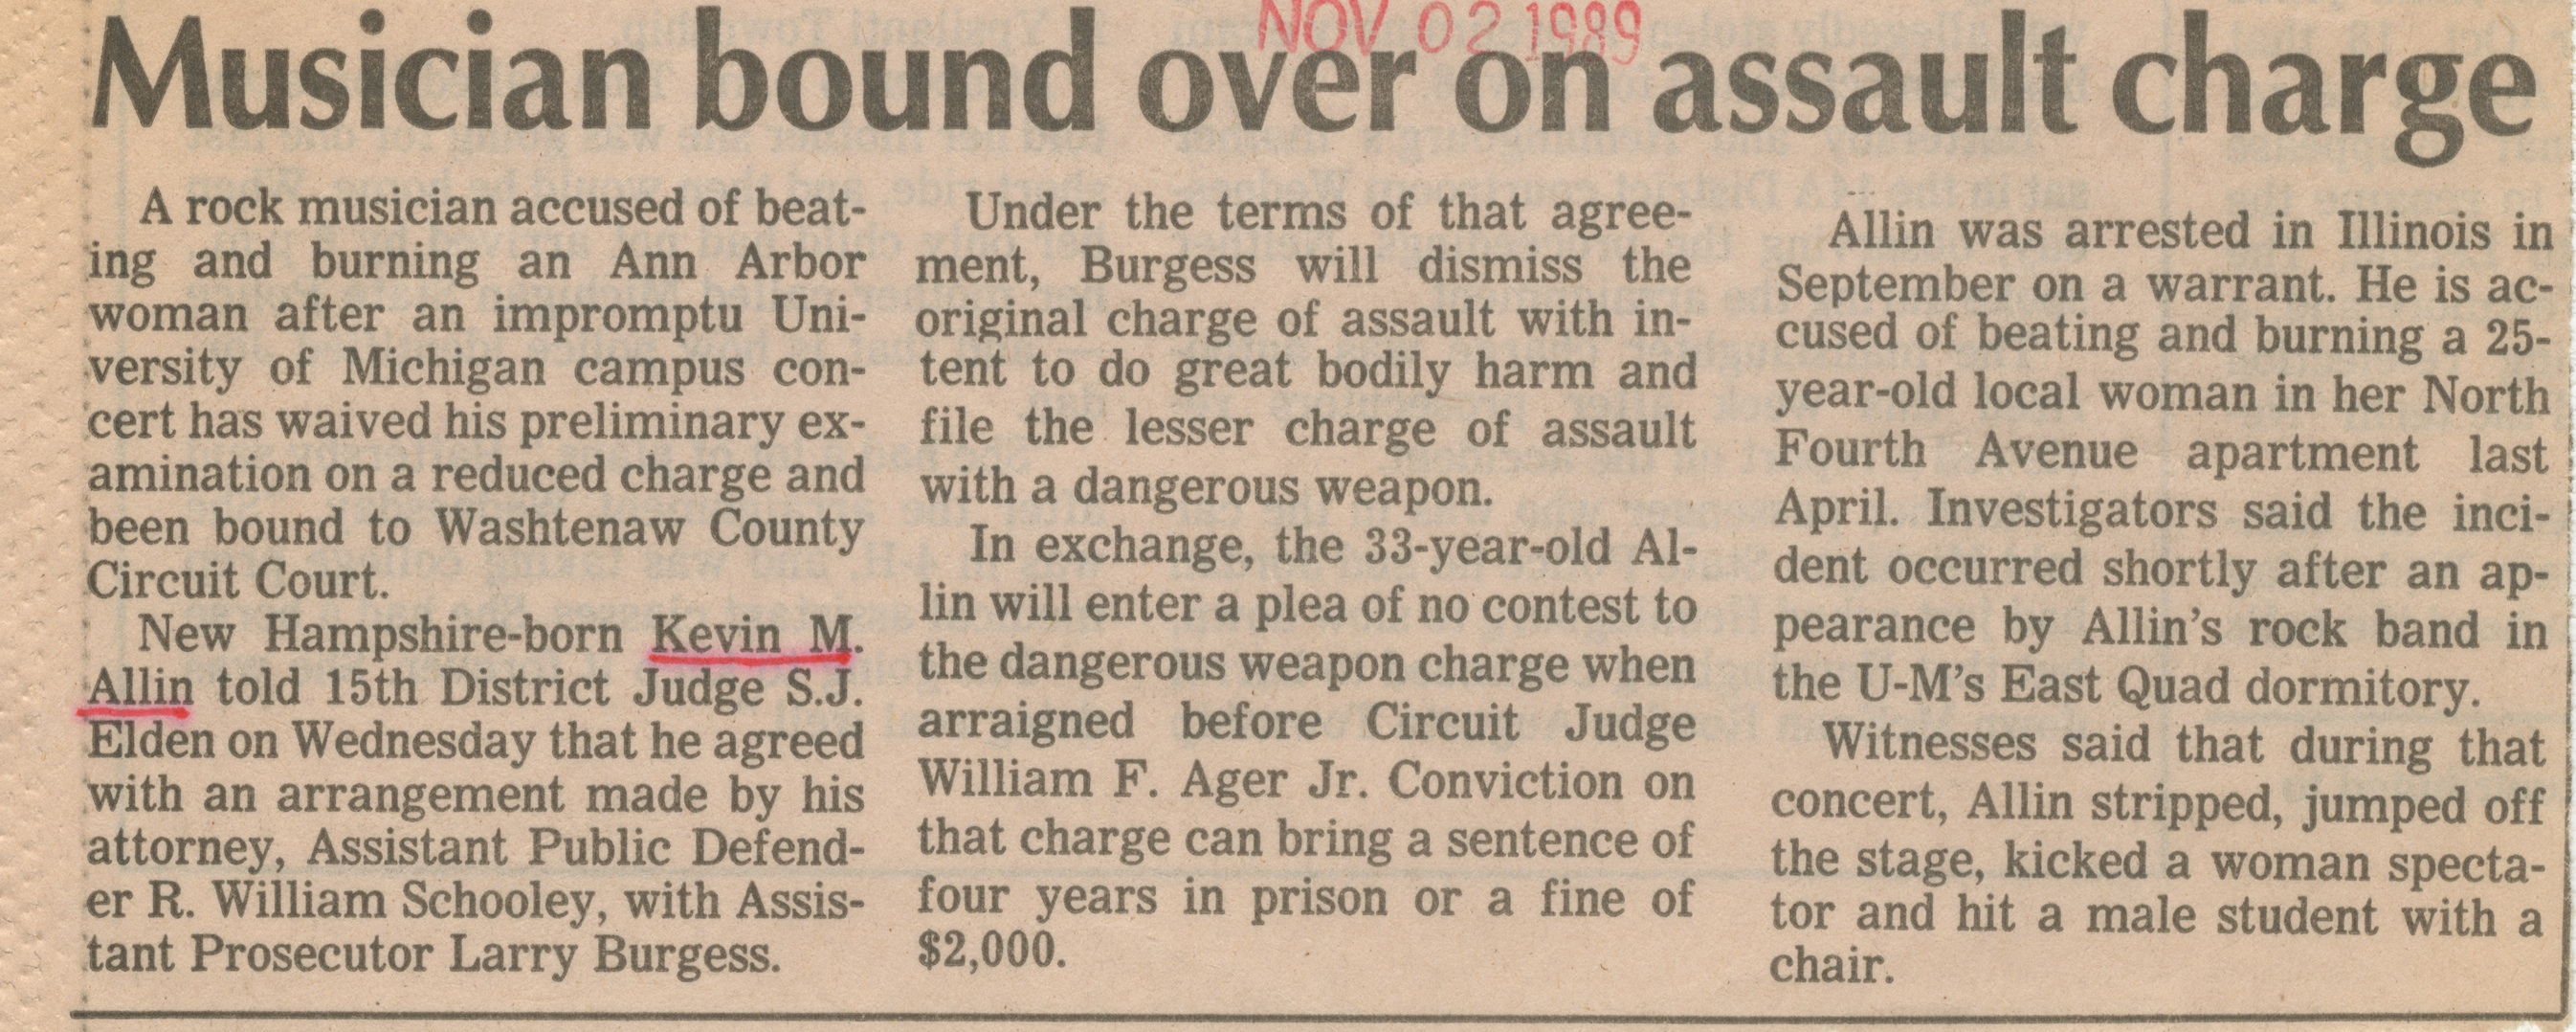 Musician Bound Over On Assault Charge image